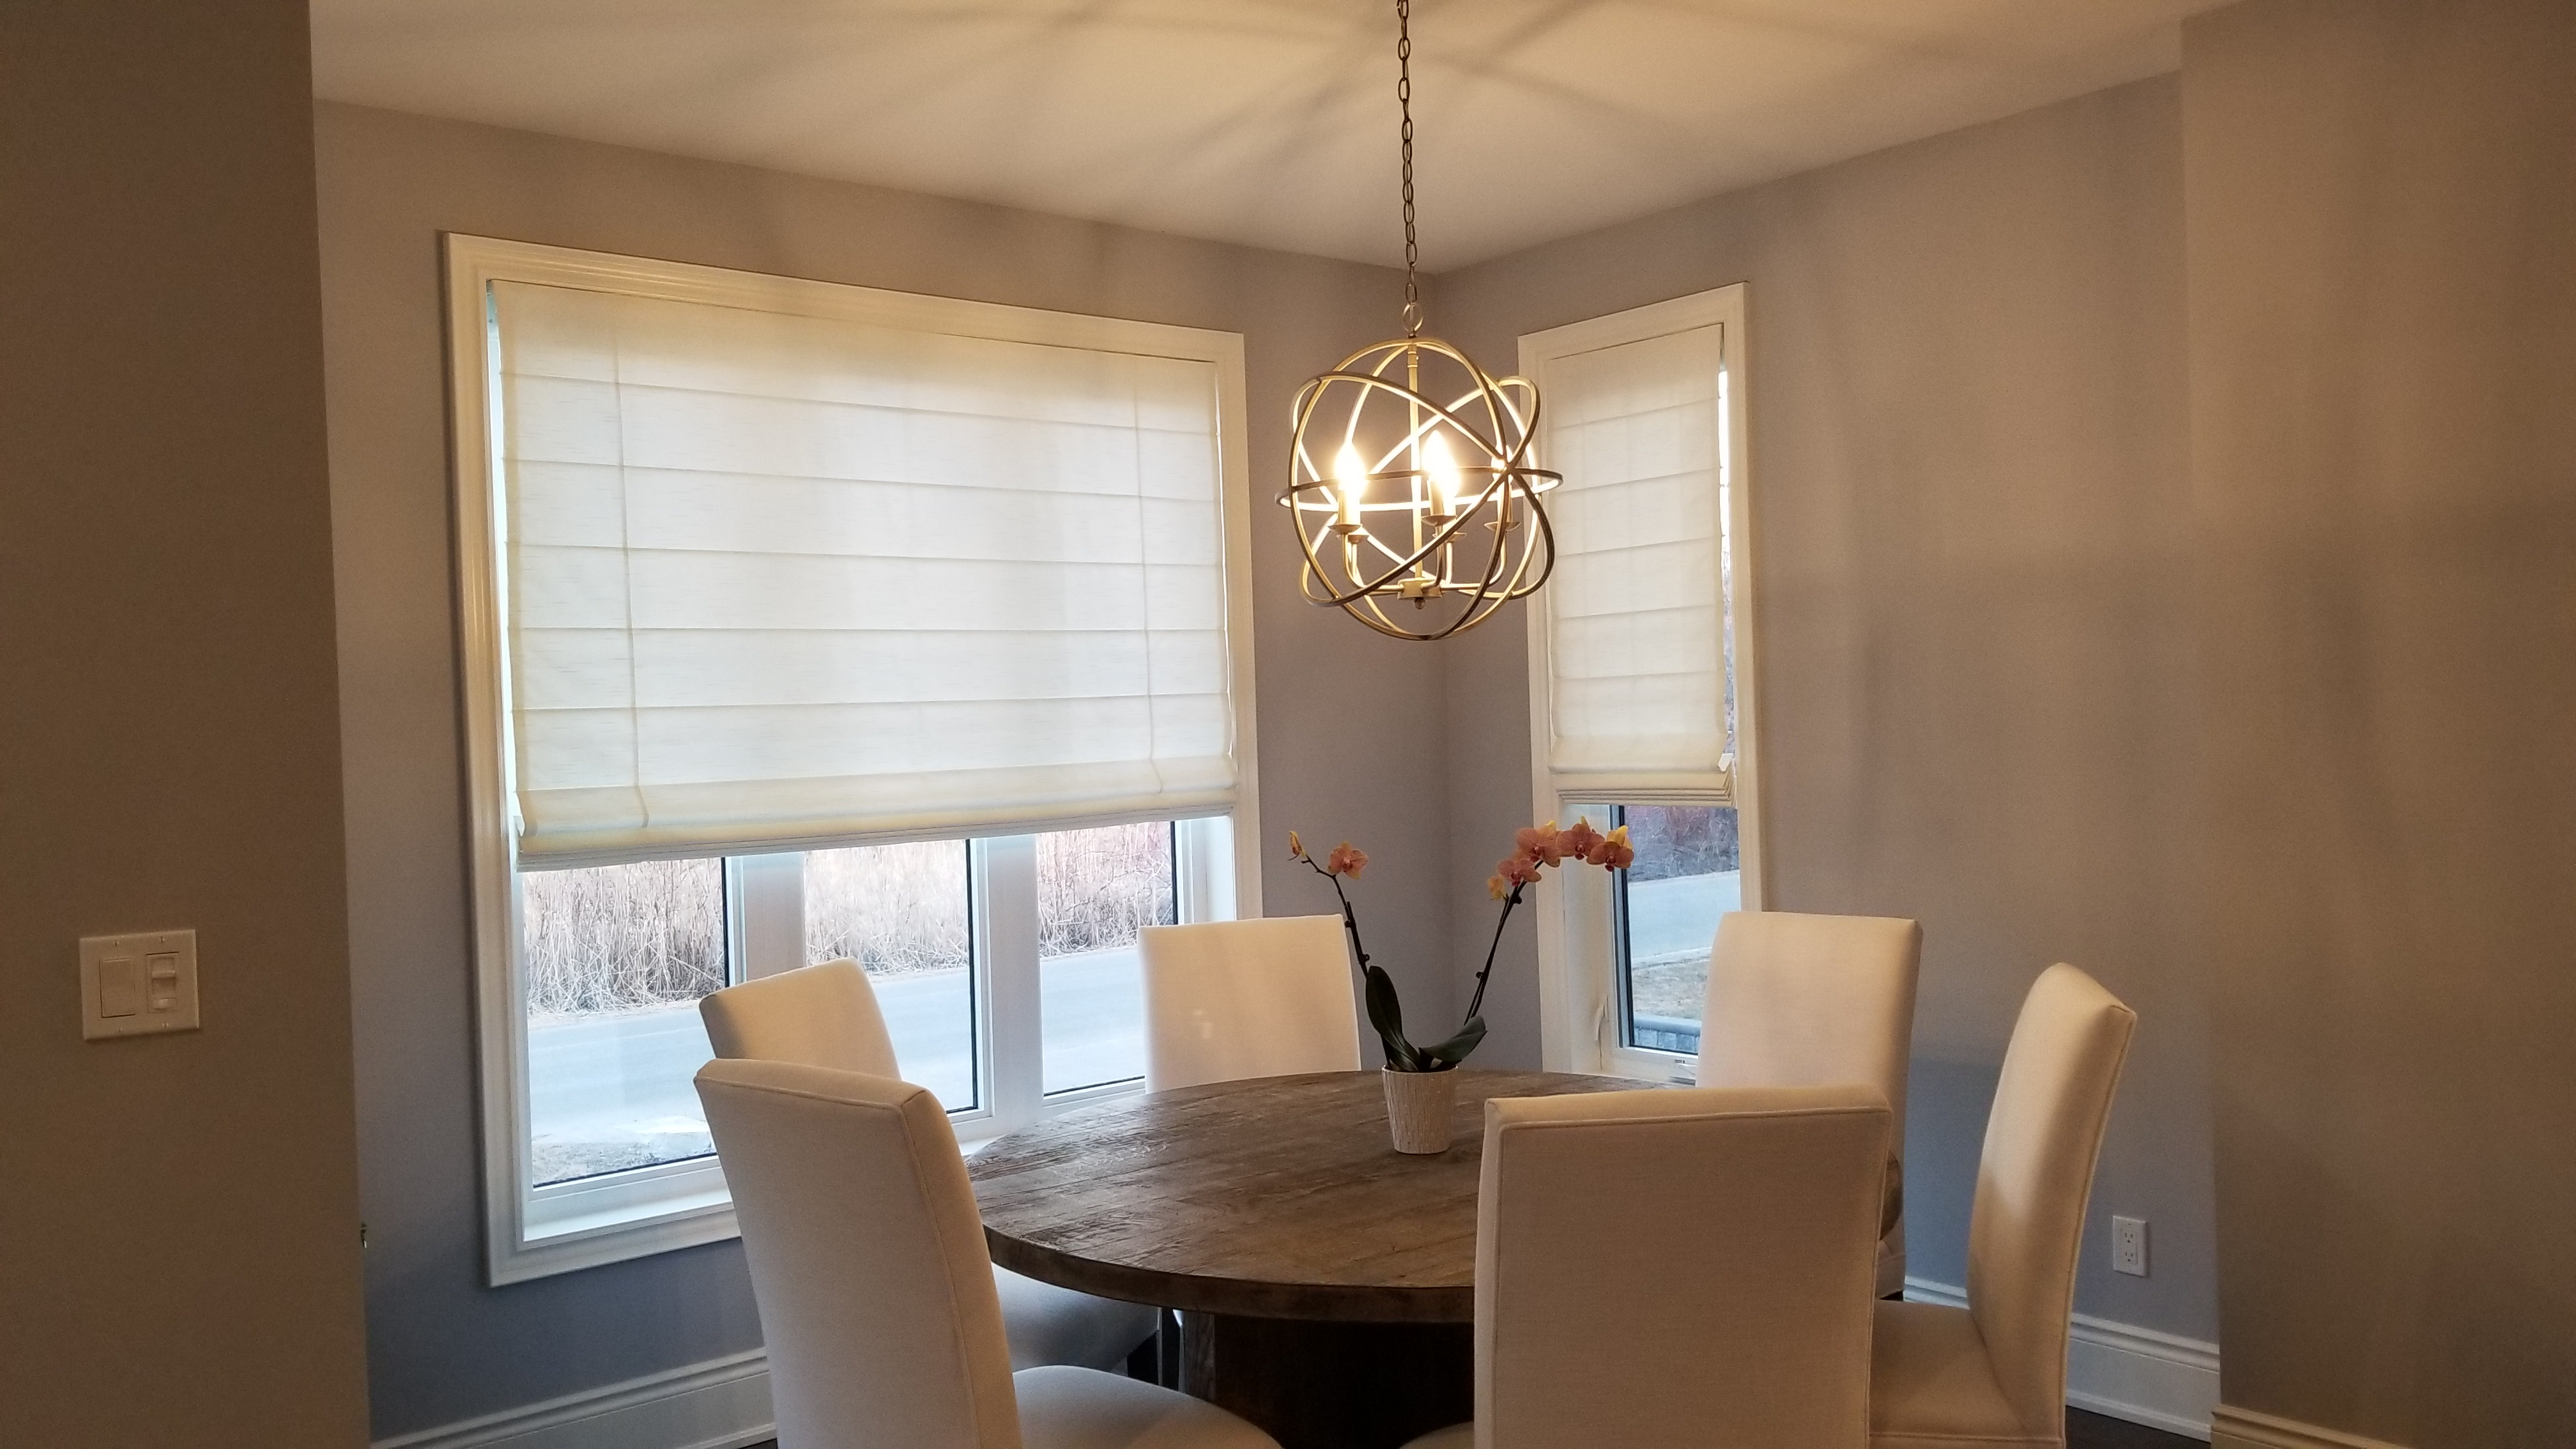 Budget Blinds of Ajax and Whitby